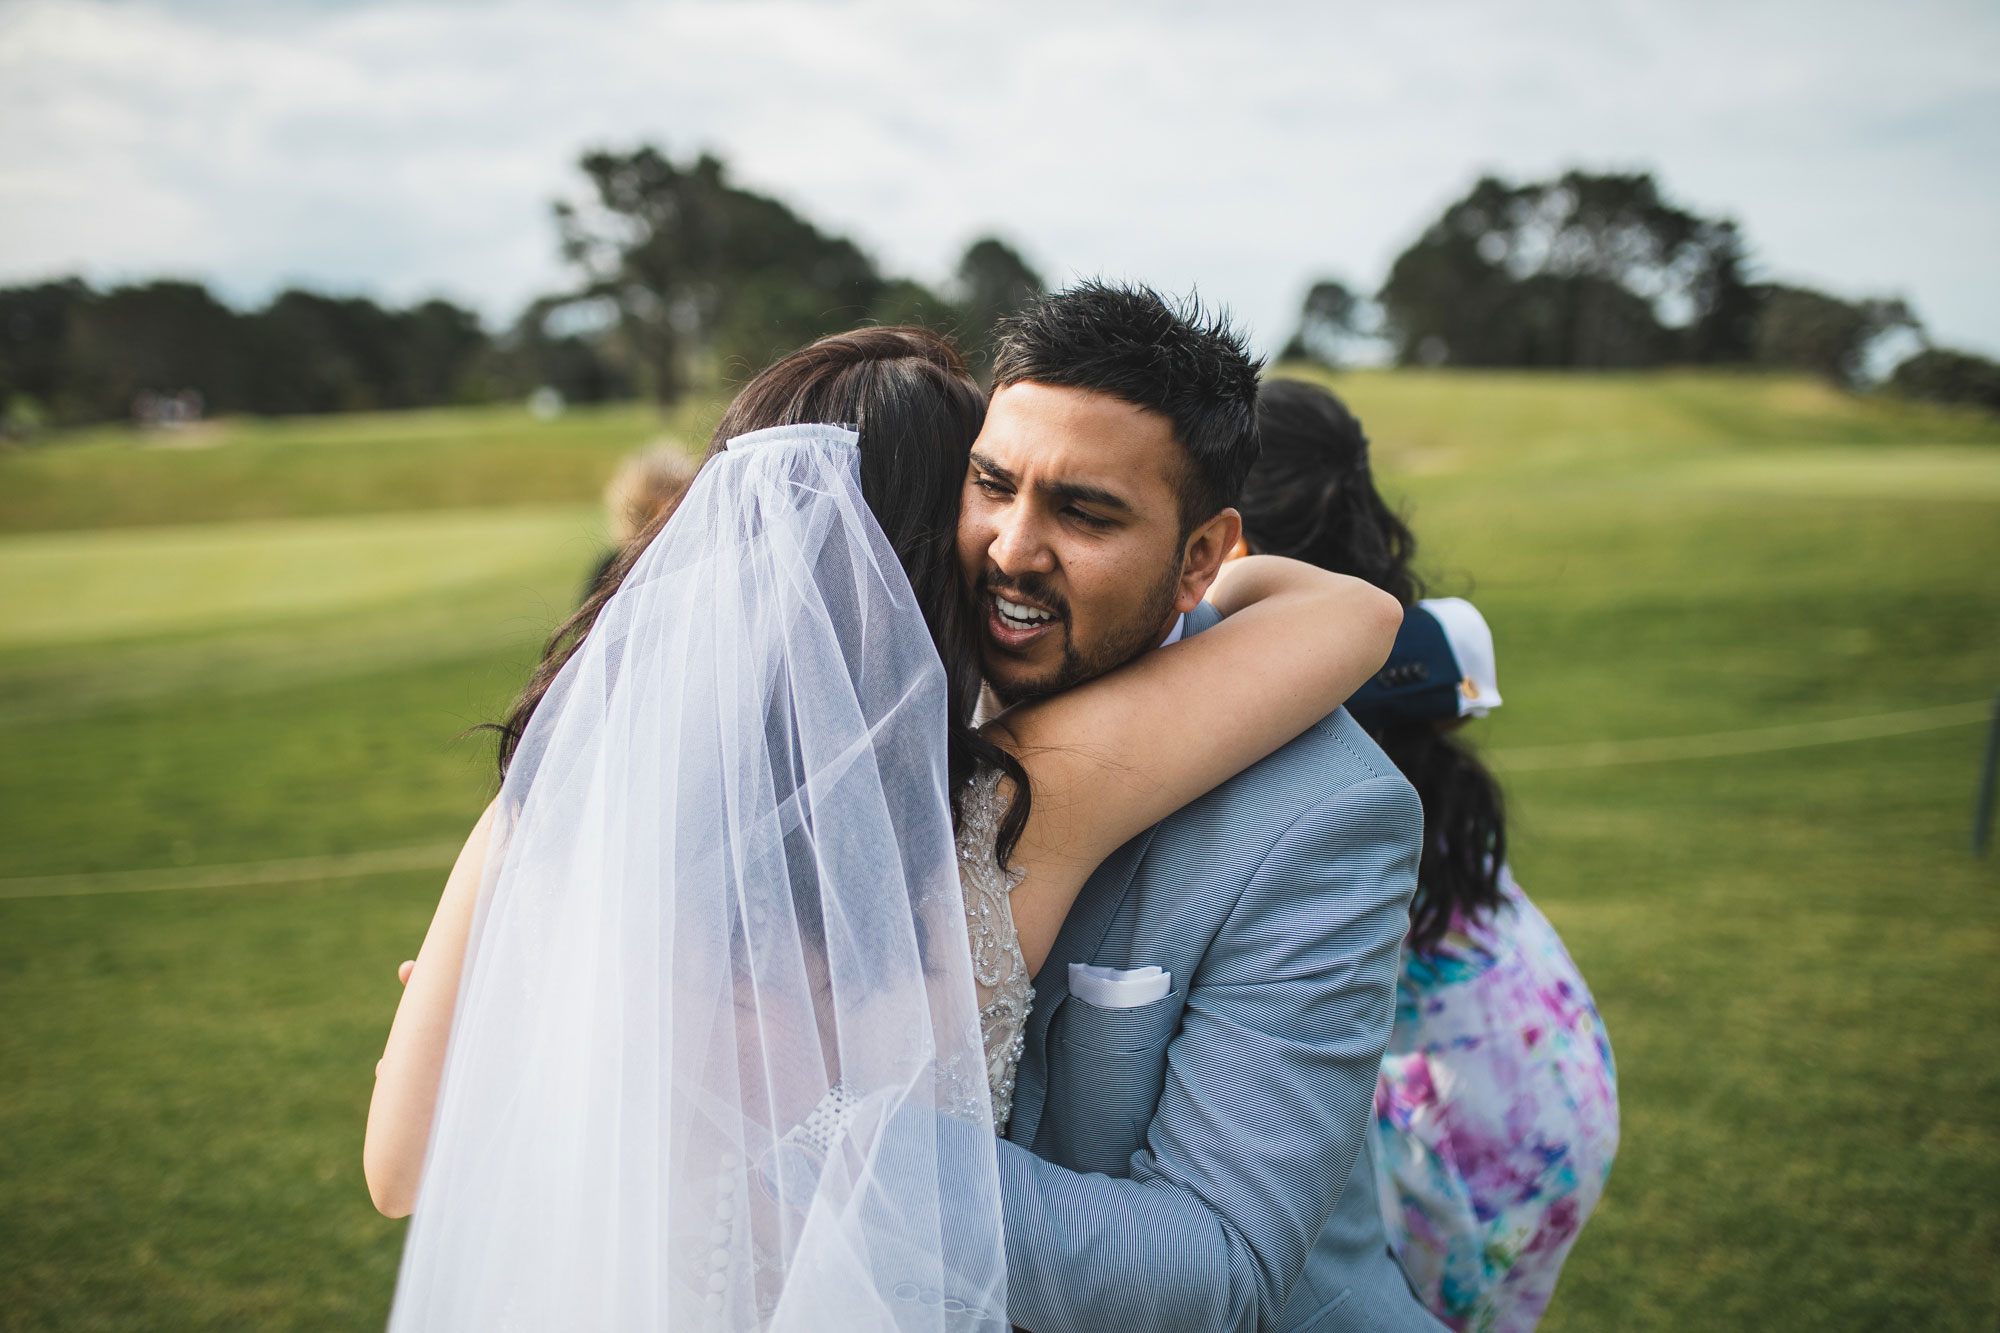 auckland wedding guest hugging bride